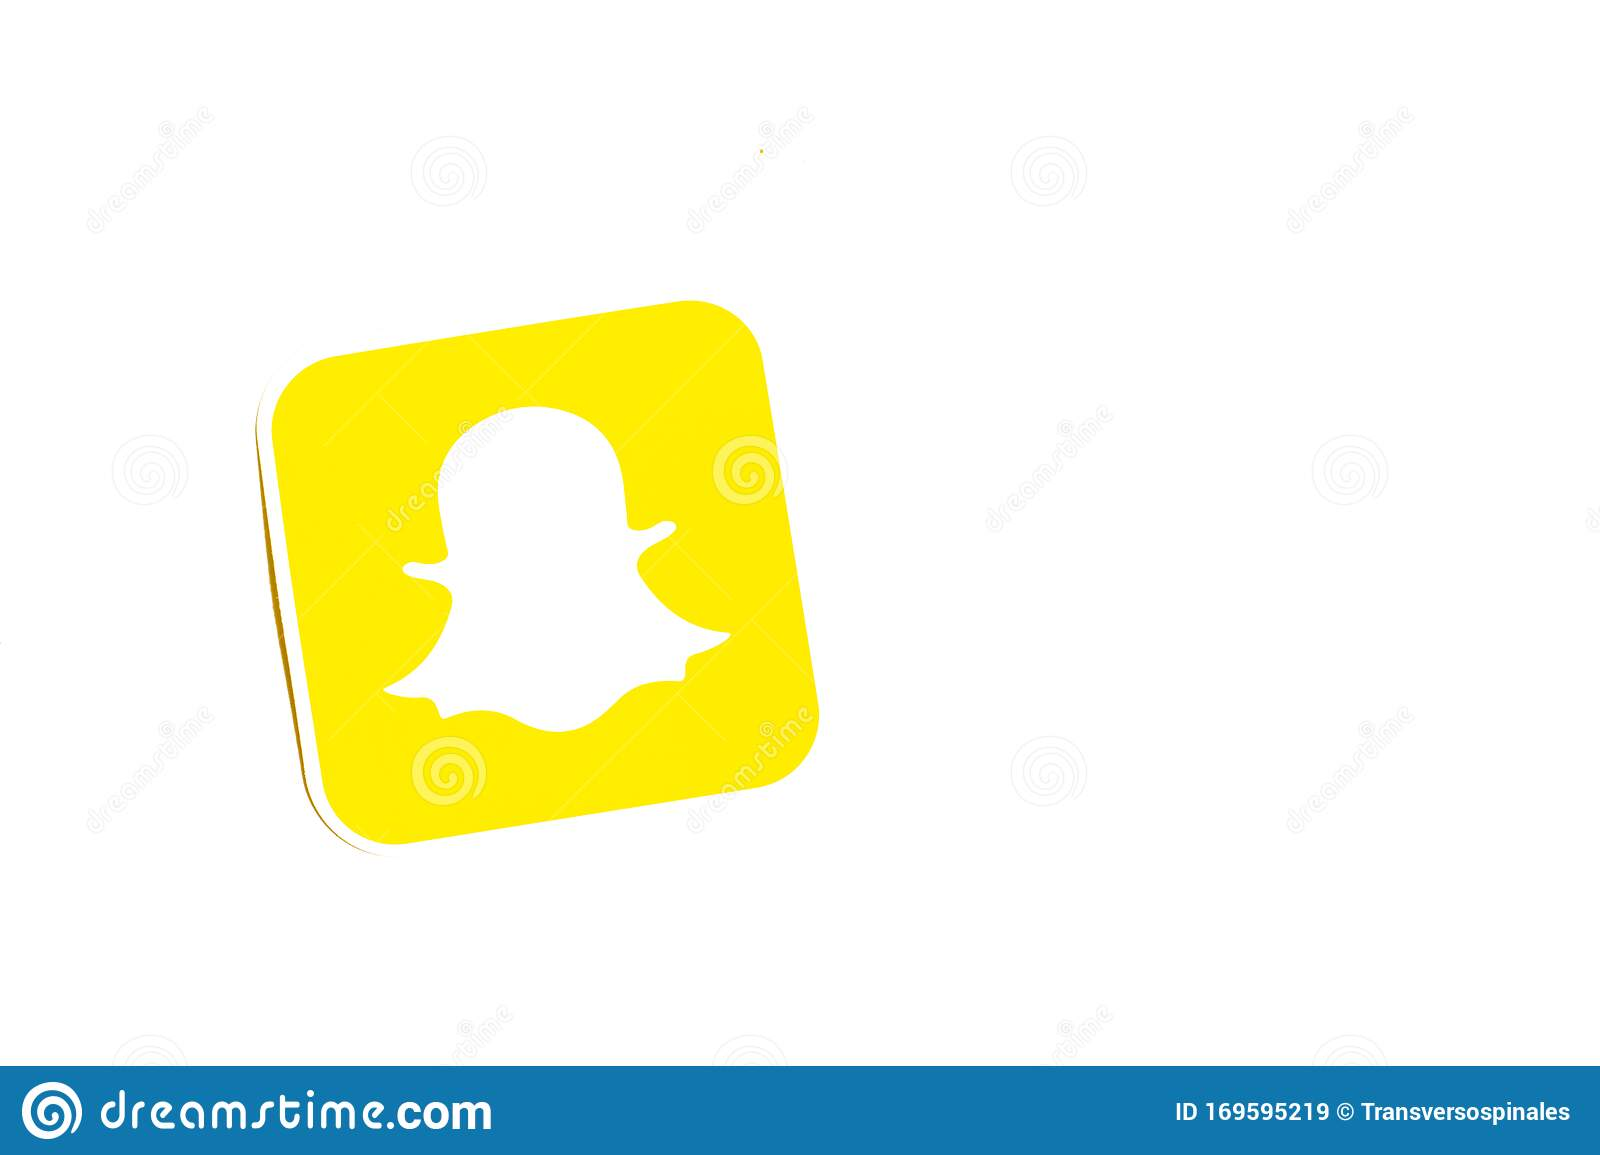 50 Snapchat Logo White Background Photos Free Royalty Free Stock Photos From Dreamstime